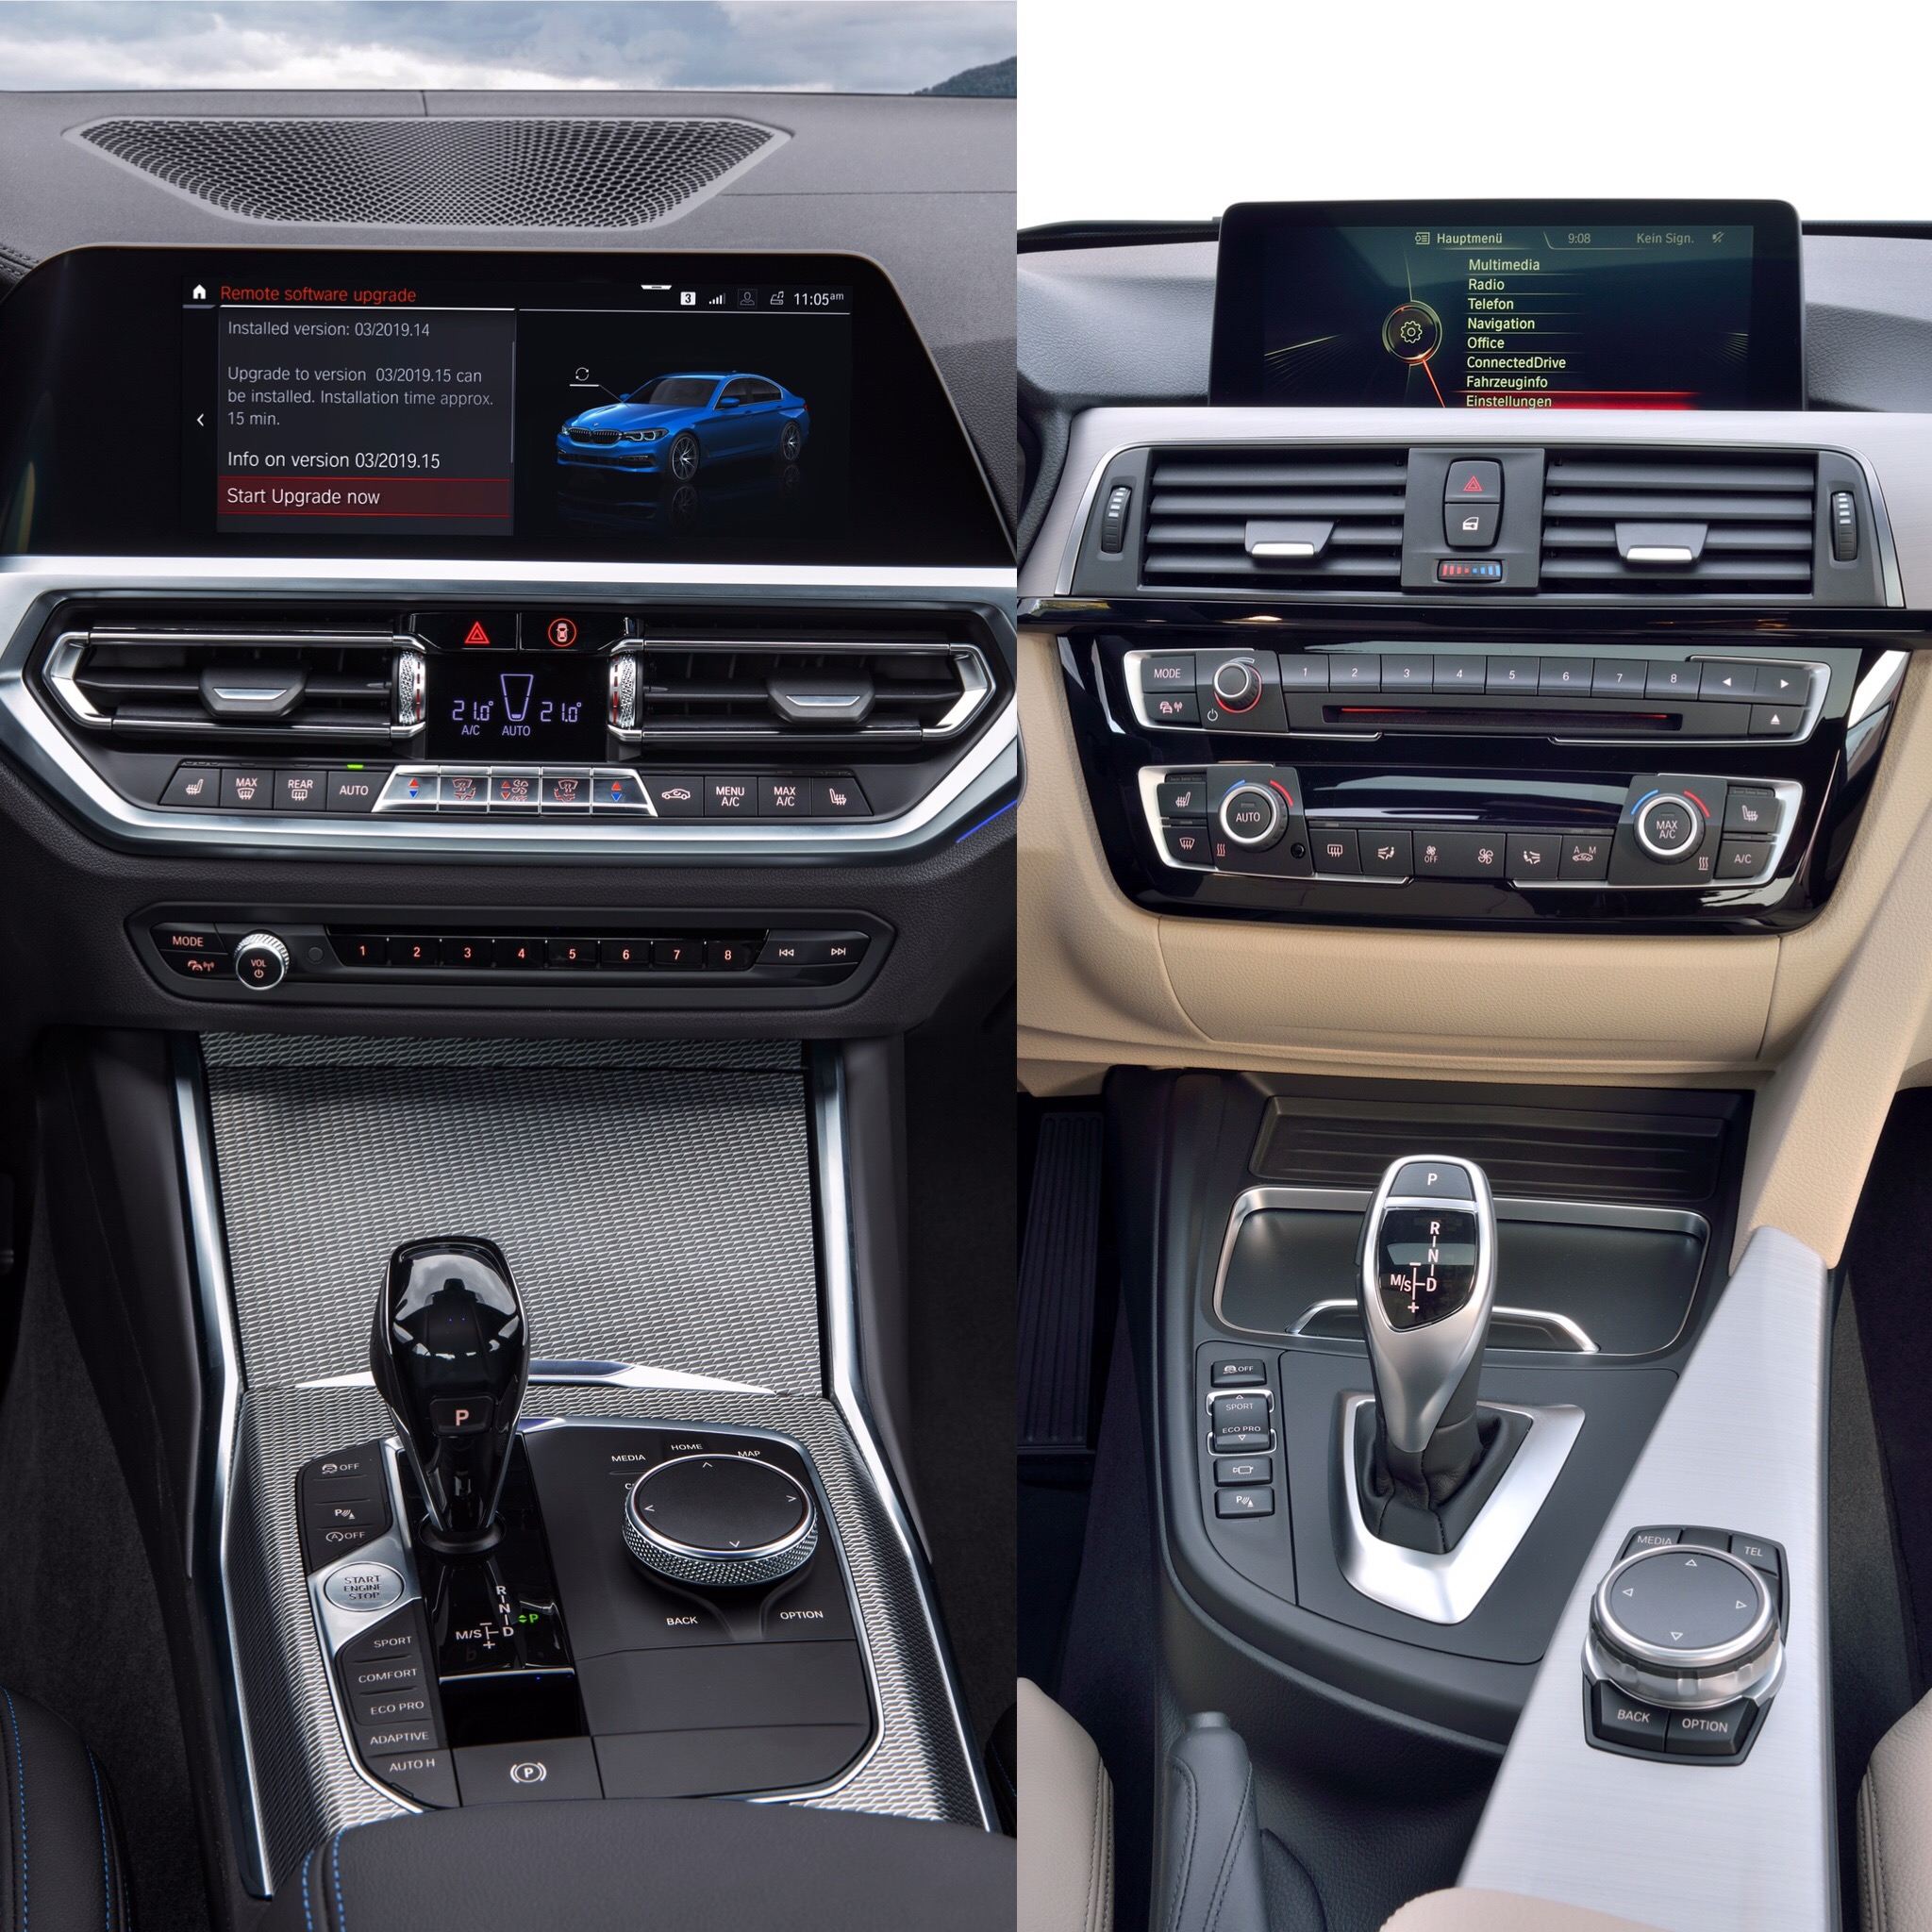 Photo Comparison G20 Bmw 3 Series Vs Facelifted Audi A4: Photo Comparison: G20 BMW 3 Series Vs F30 BMW 3 Series